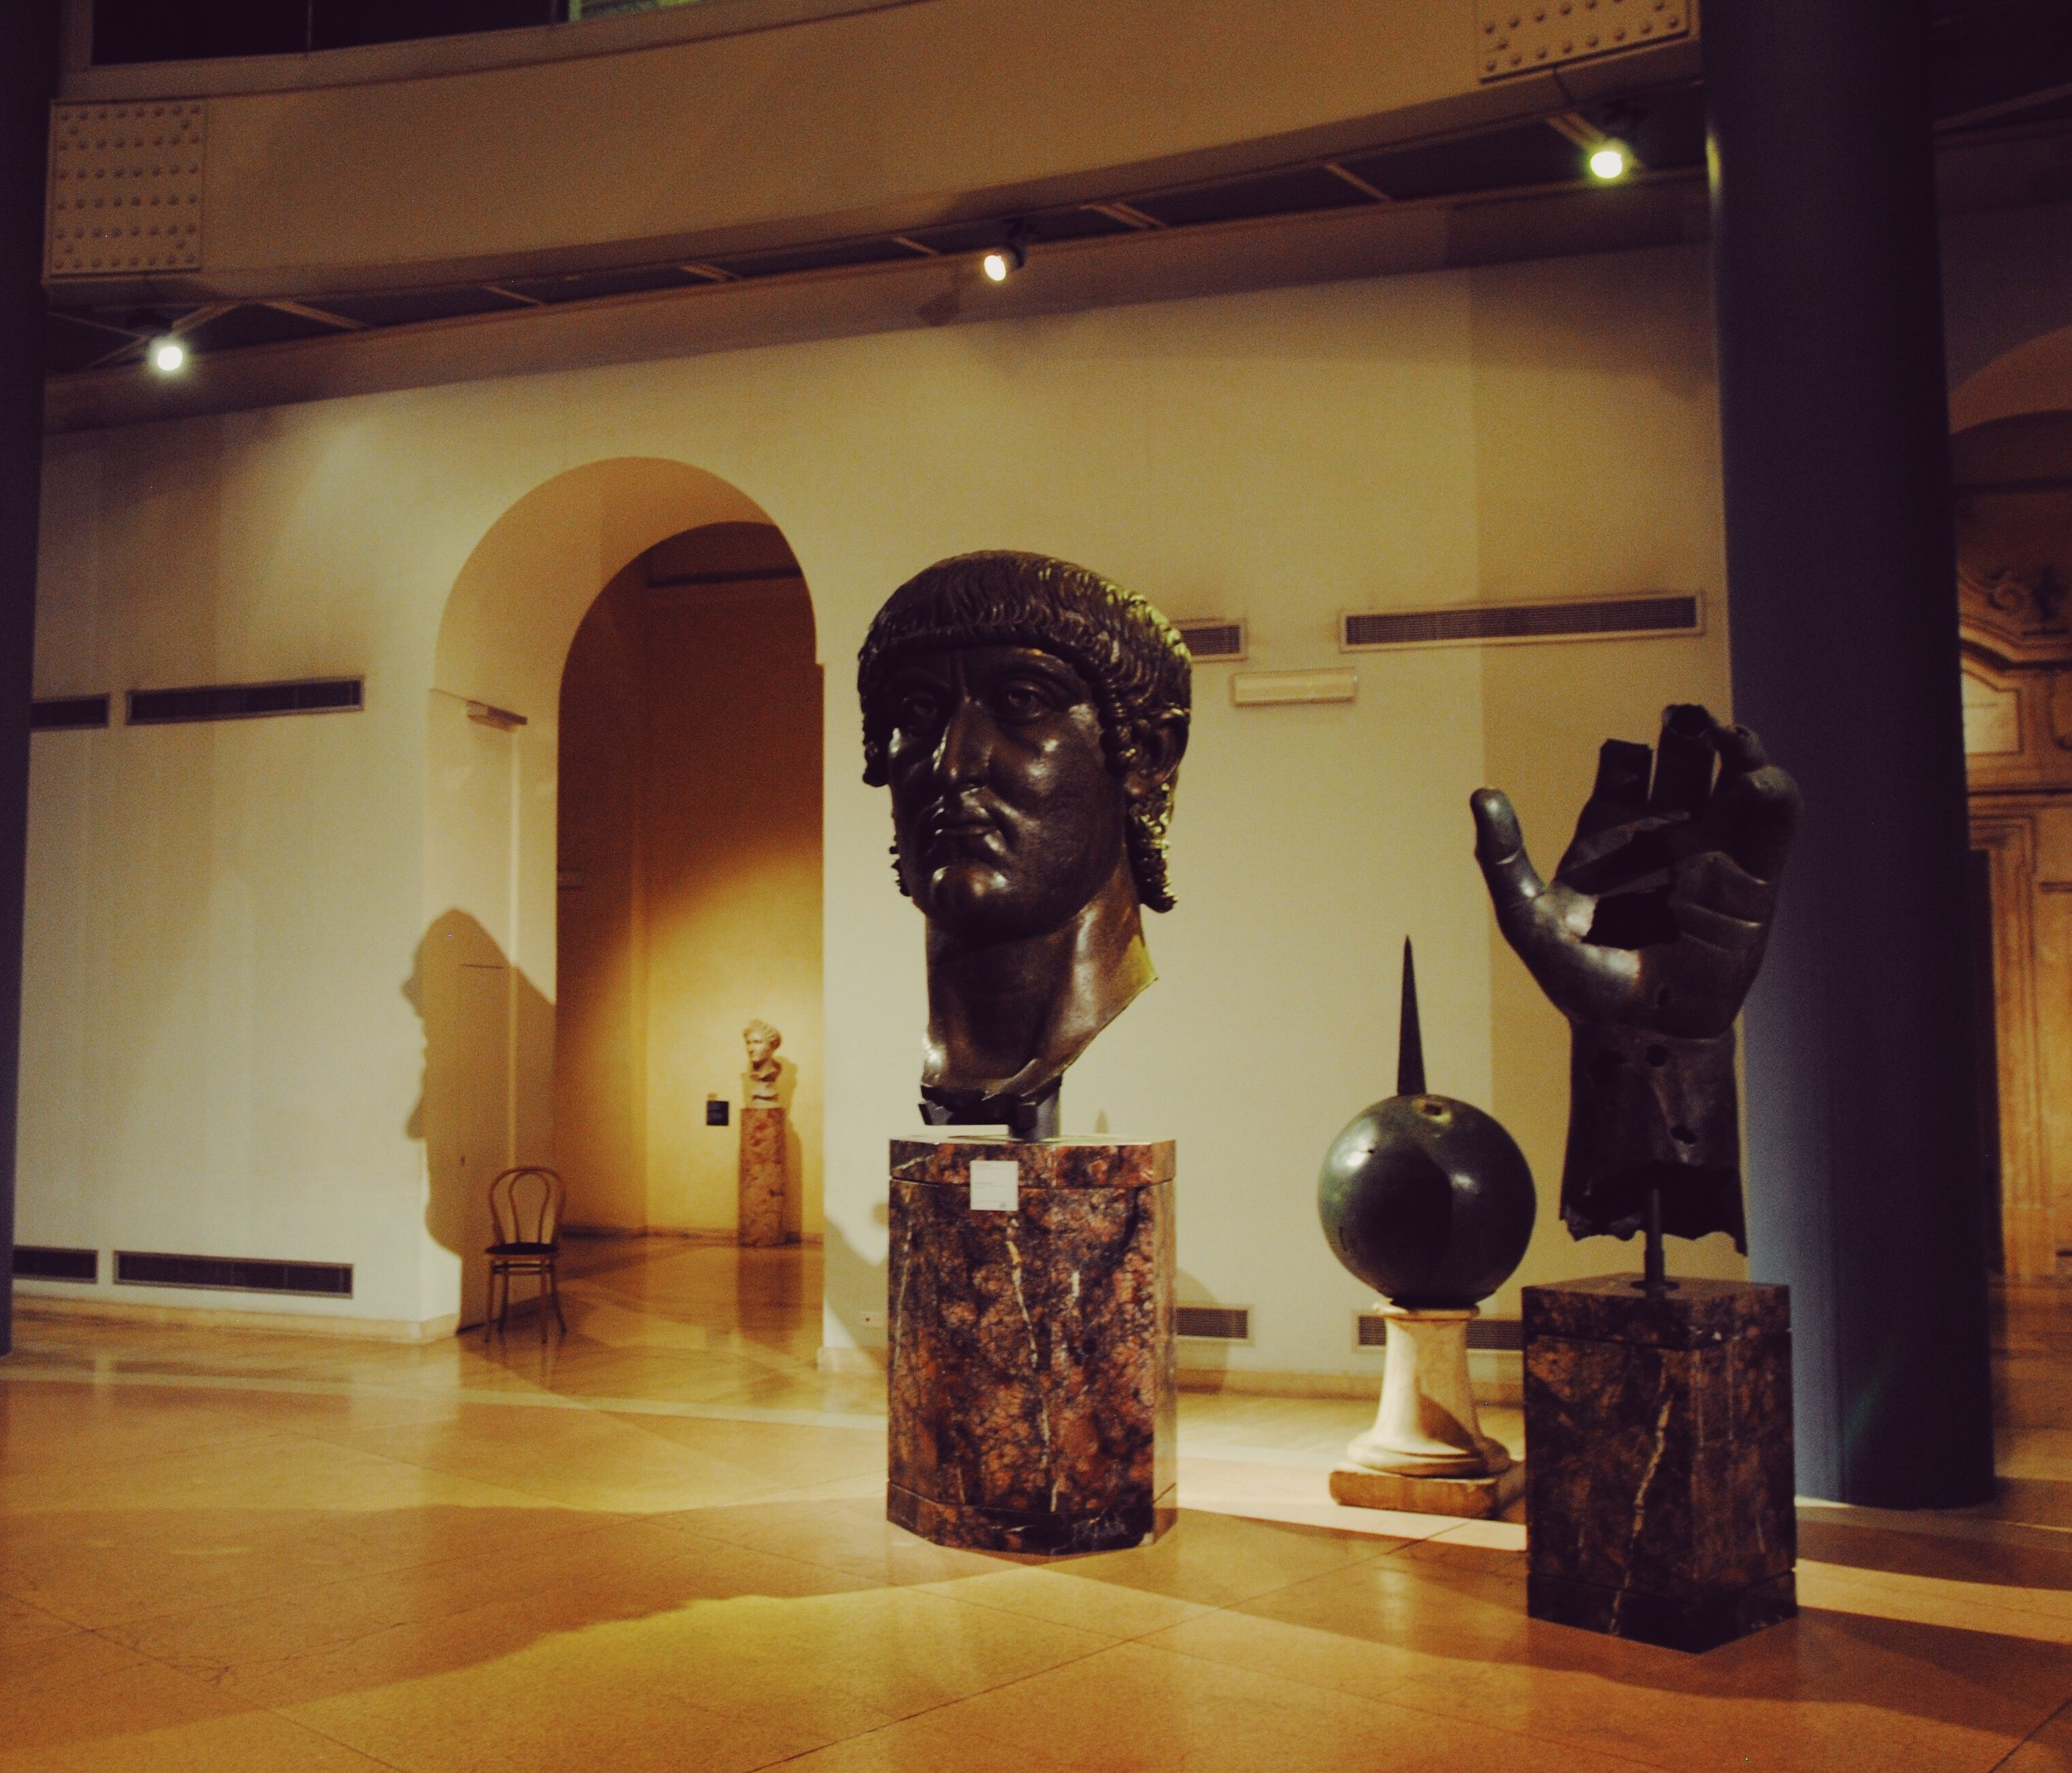 Capitoline Museum: Colossal bronze head of Constantine 4th Century CE